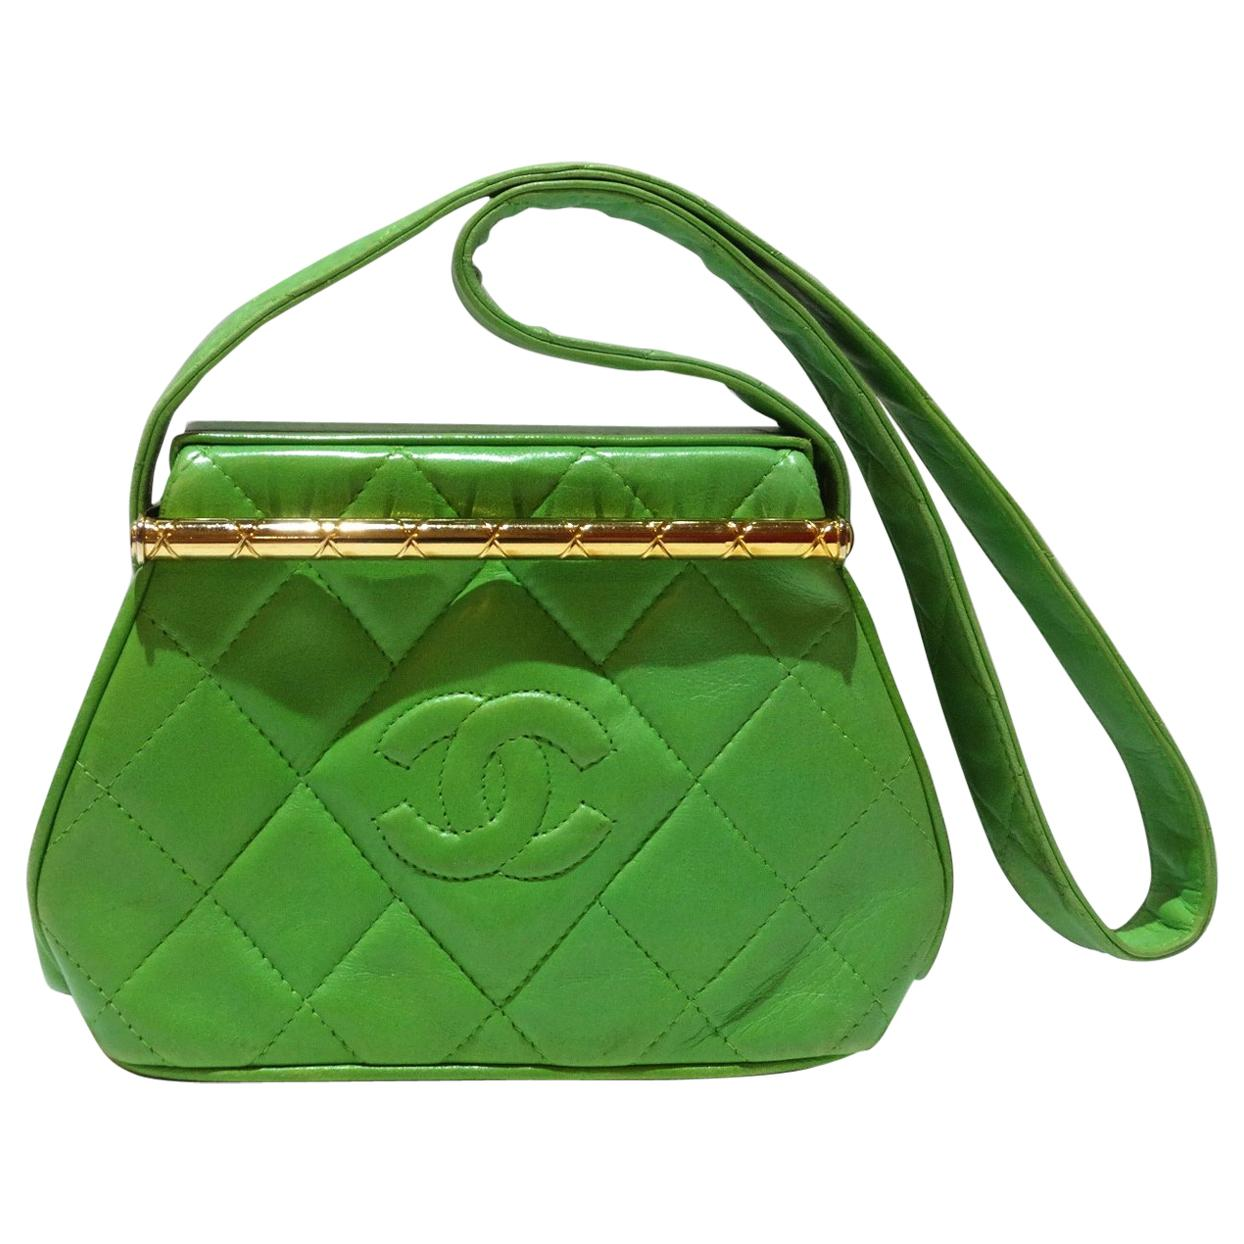 787880243ce5 Vintage by Misty Handbags and Purses - 1stdibs